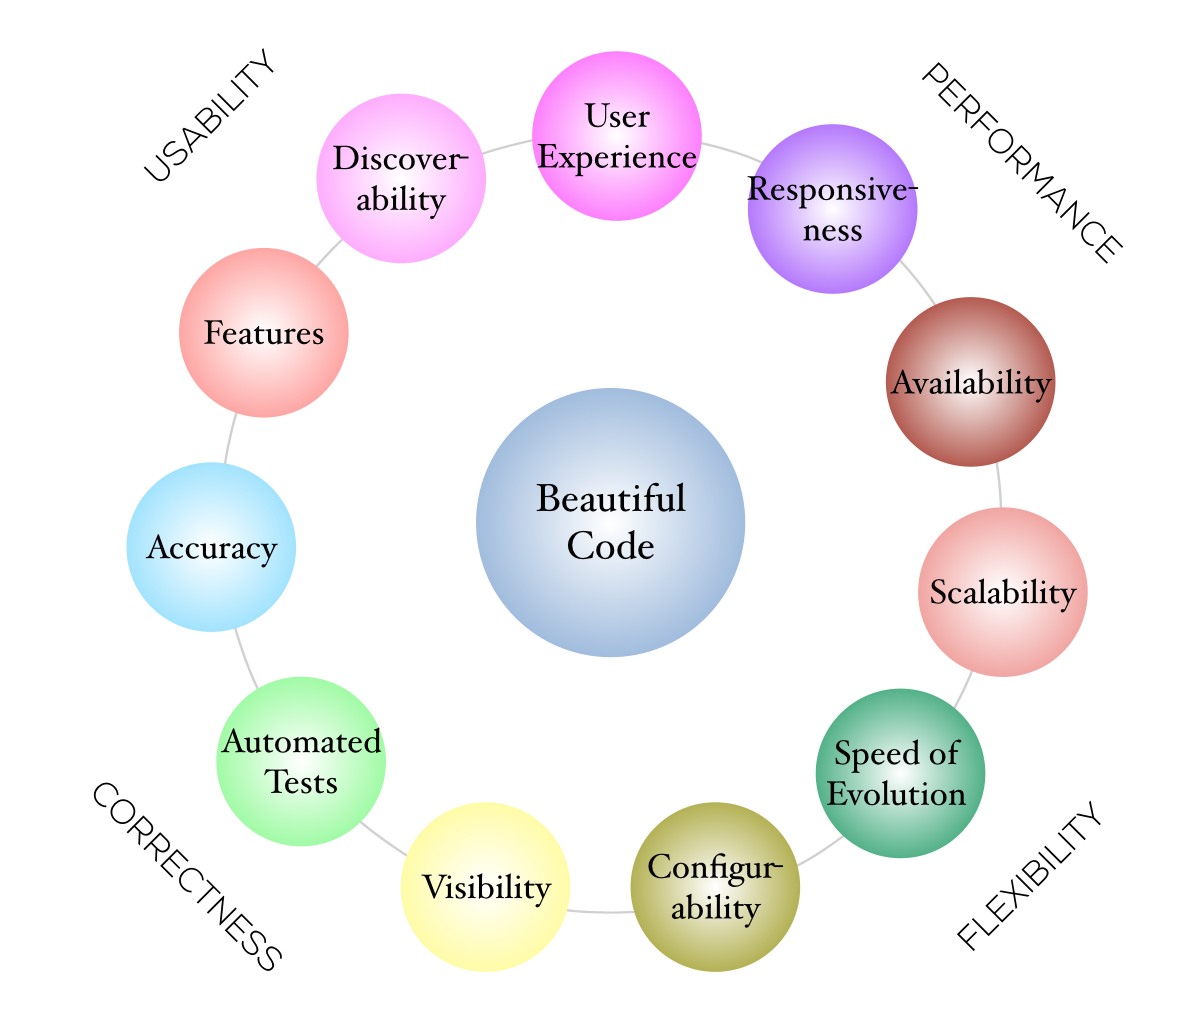 Usability (Features, Discoverability, User Experience); Performance (Responsiveness, Availability, Scalability); Flexibility (Speed of Evolution, Configurability); Correctness (Visibilty, Automated Tests, Accuracy)